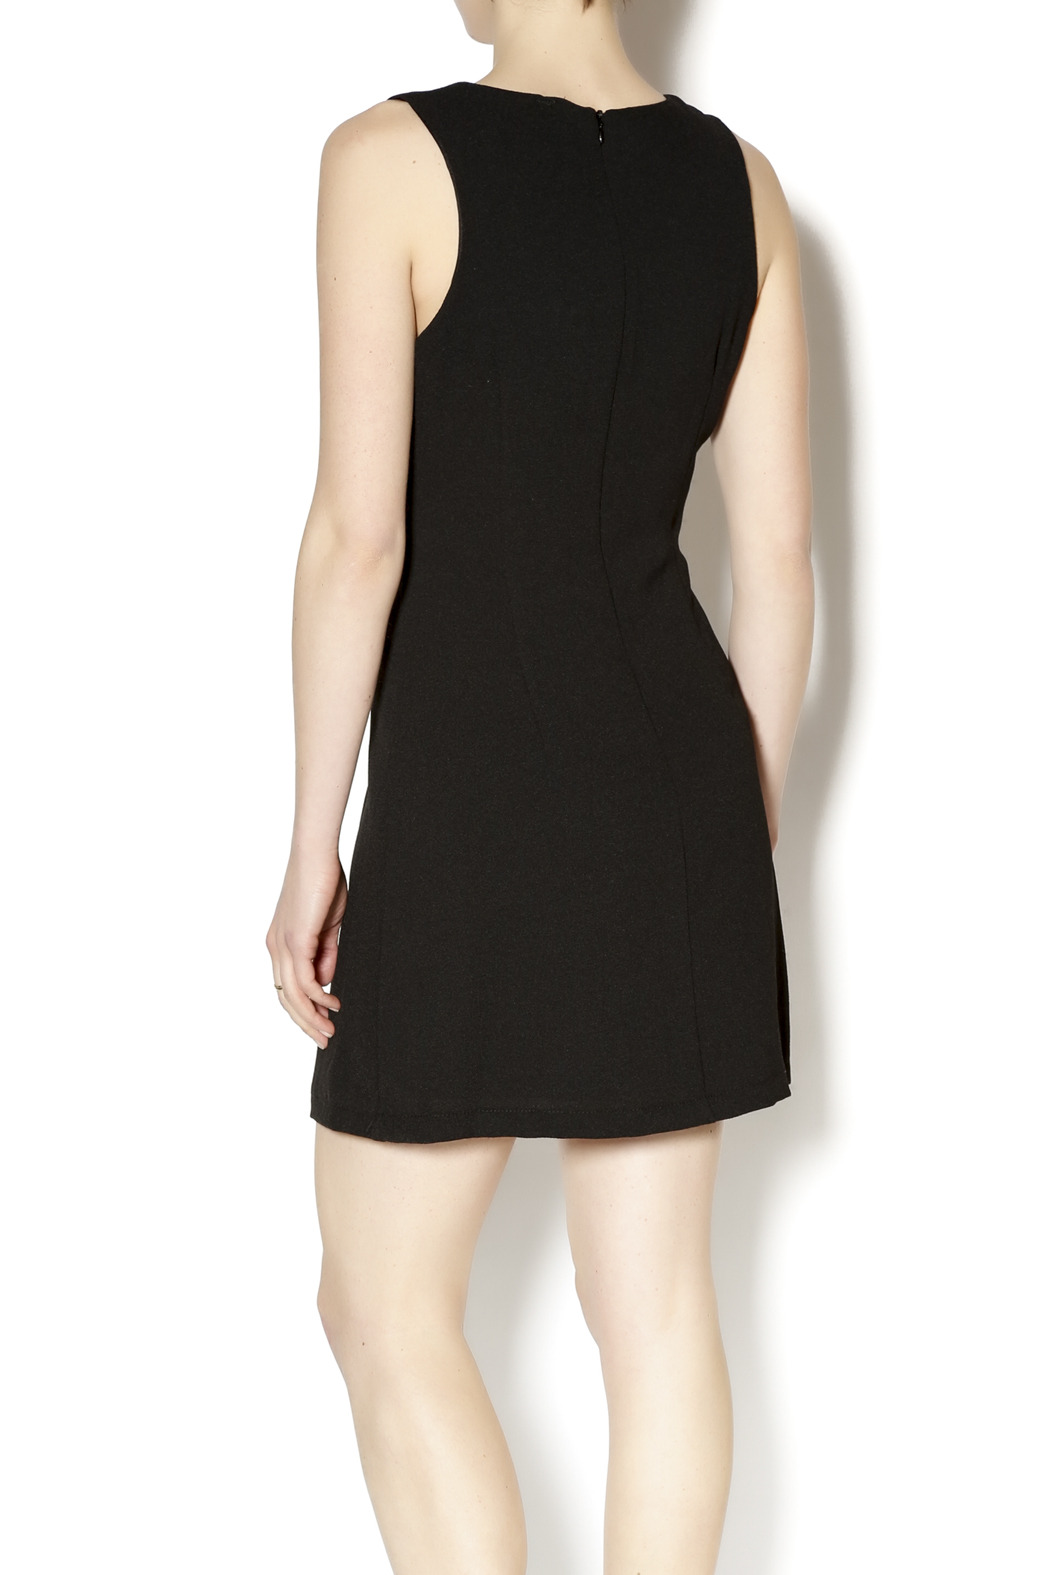 Gina Louise Little Black Dress - Back Cropped Image